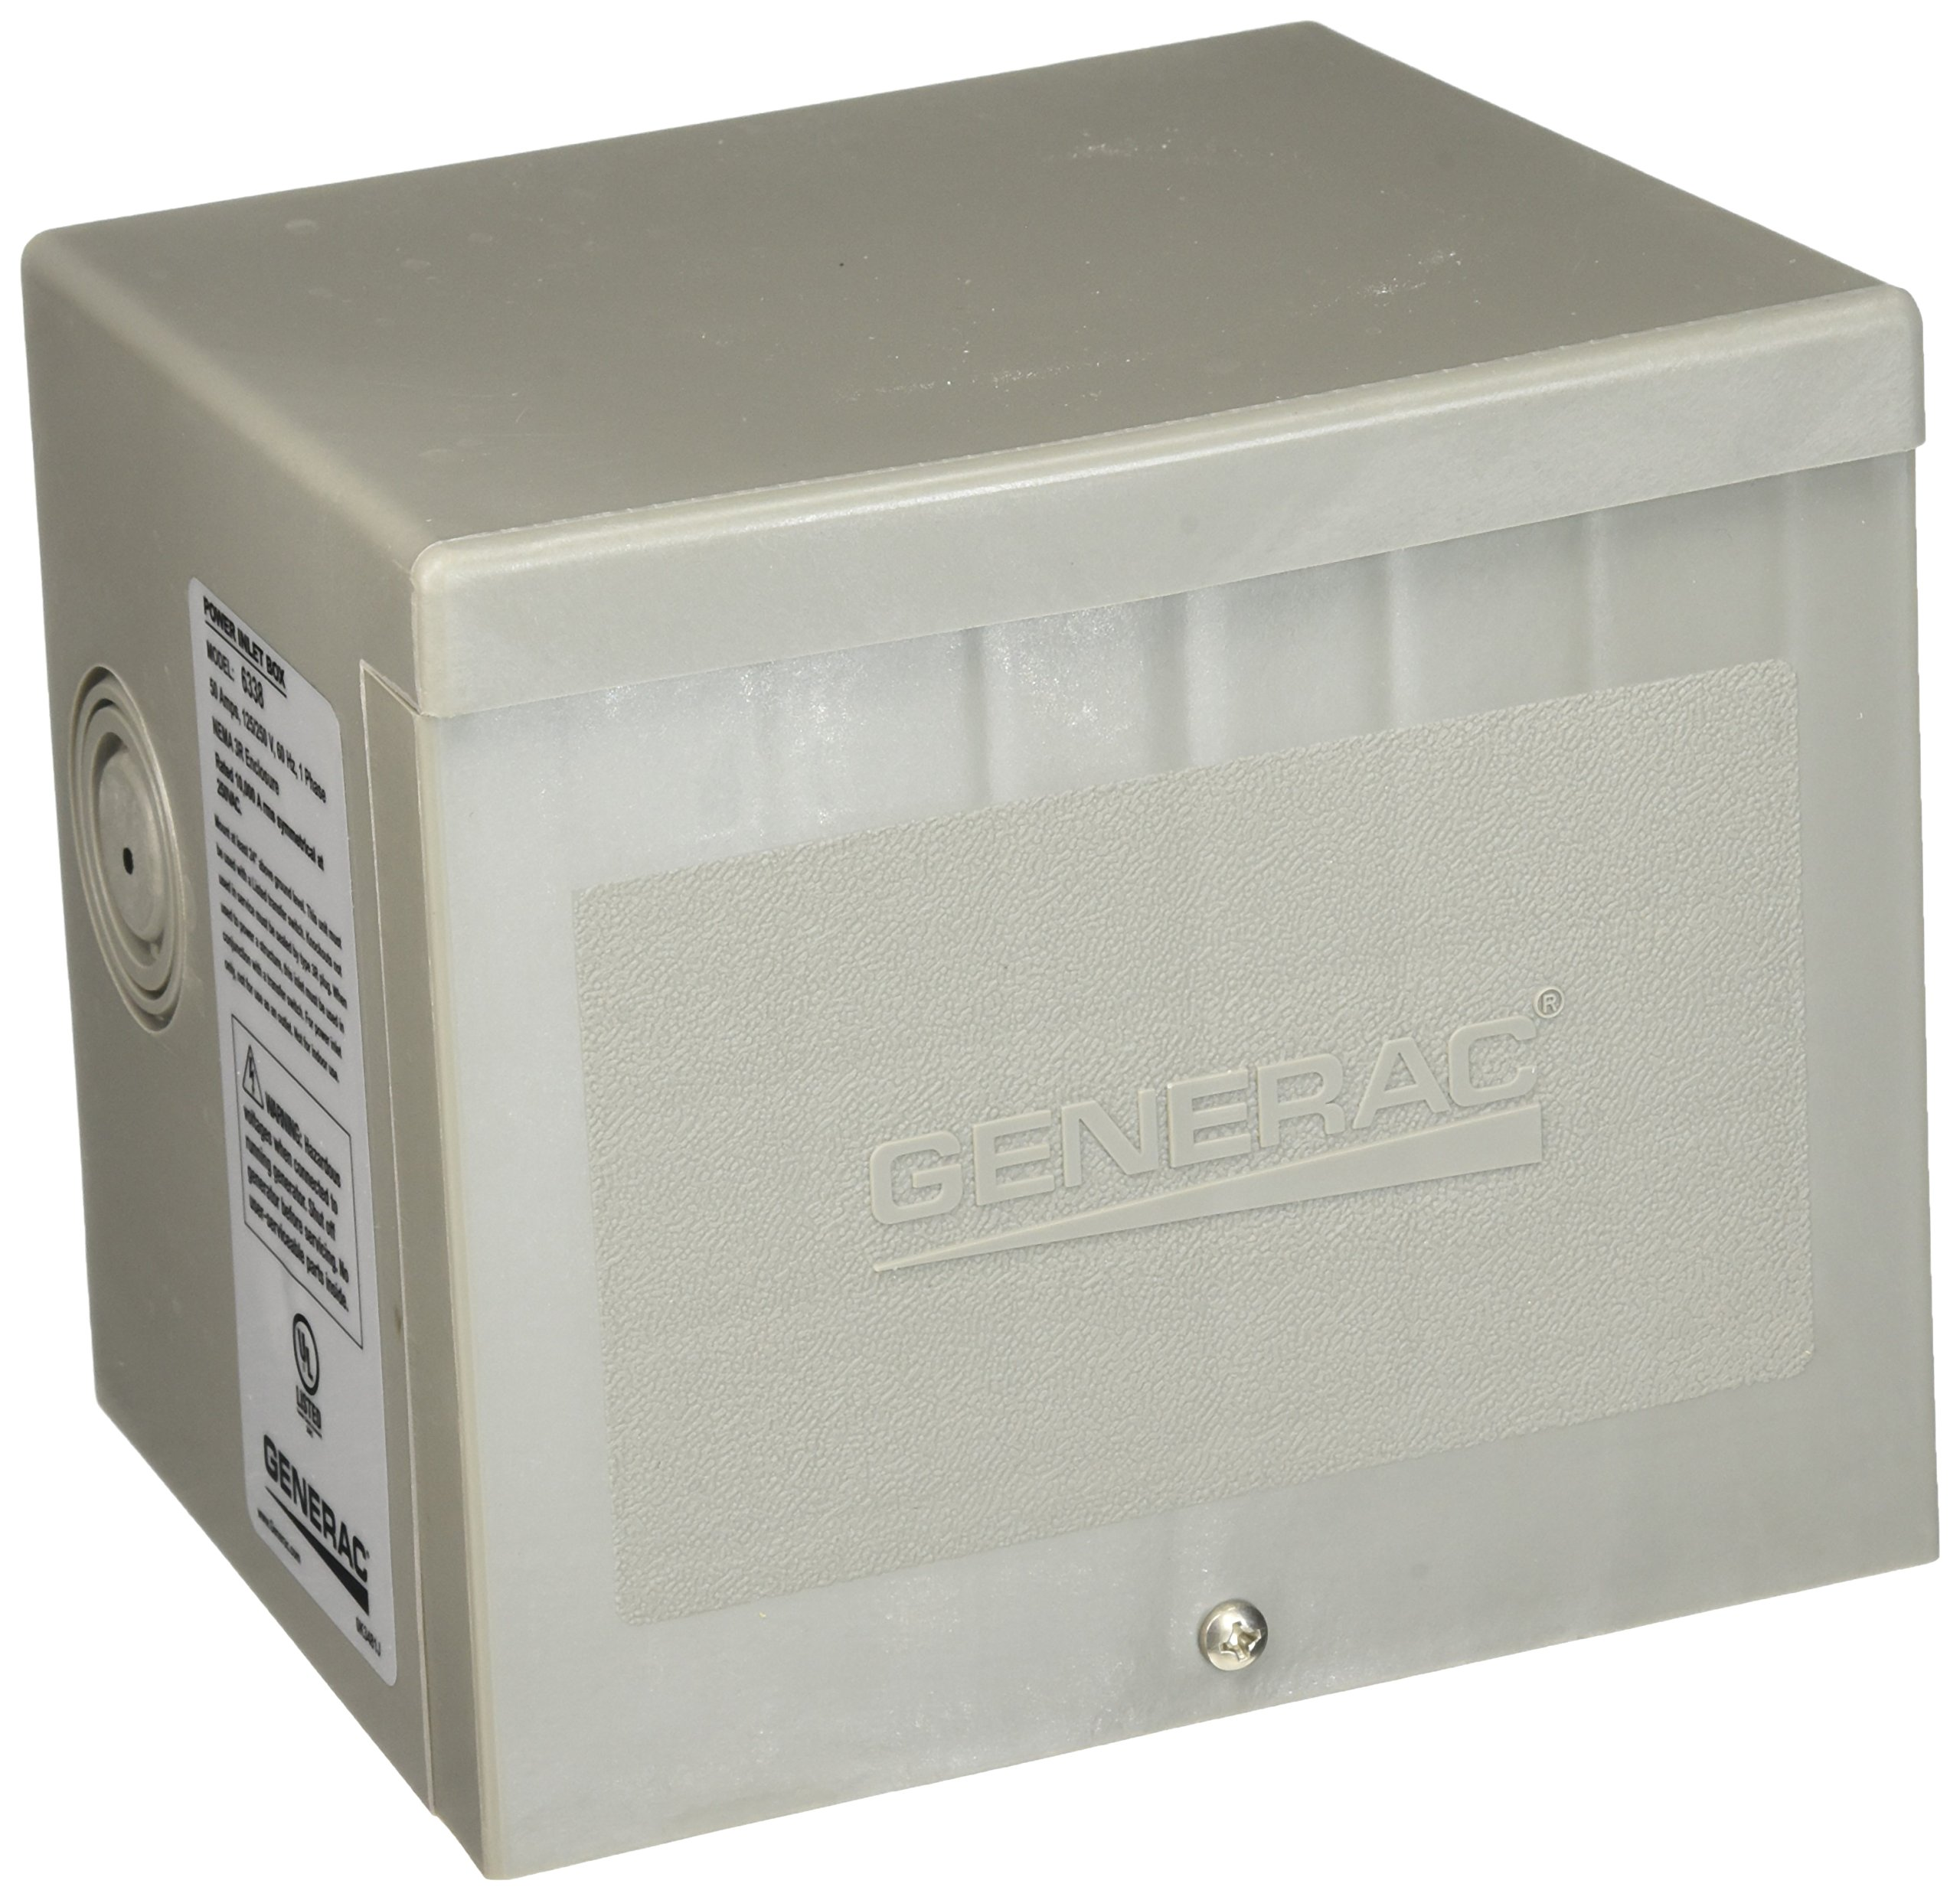 Generac 6338 50-Amp 4-Wire 125/250V Raintight Non-Metallic Power Inlet Box by Generac (Image #1)